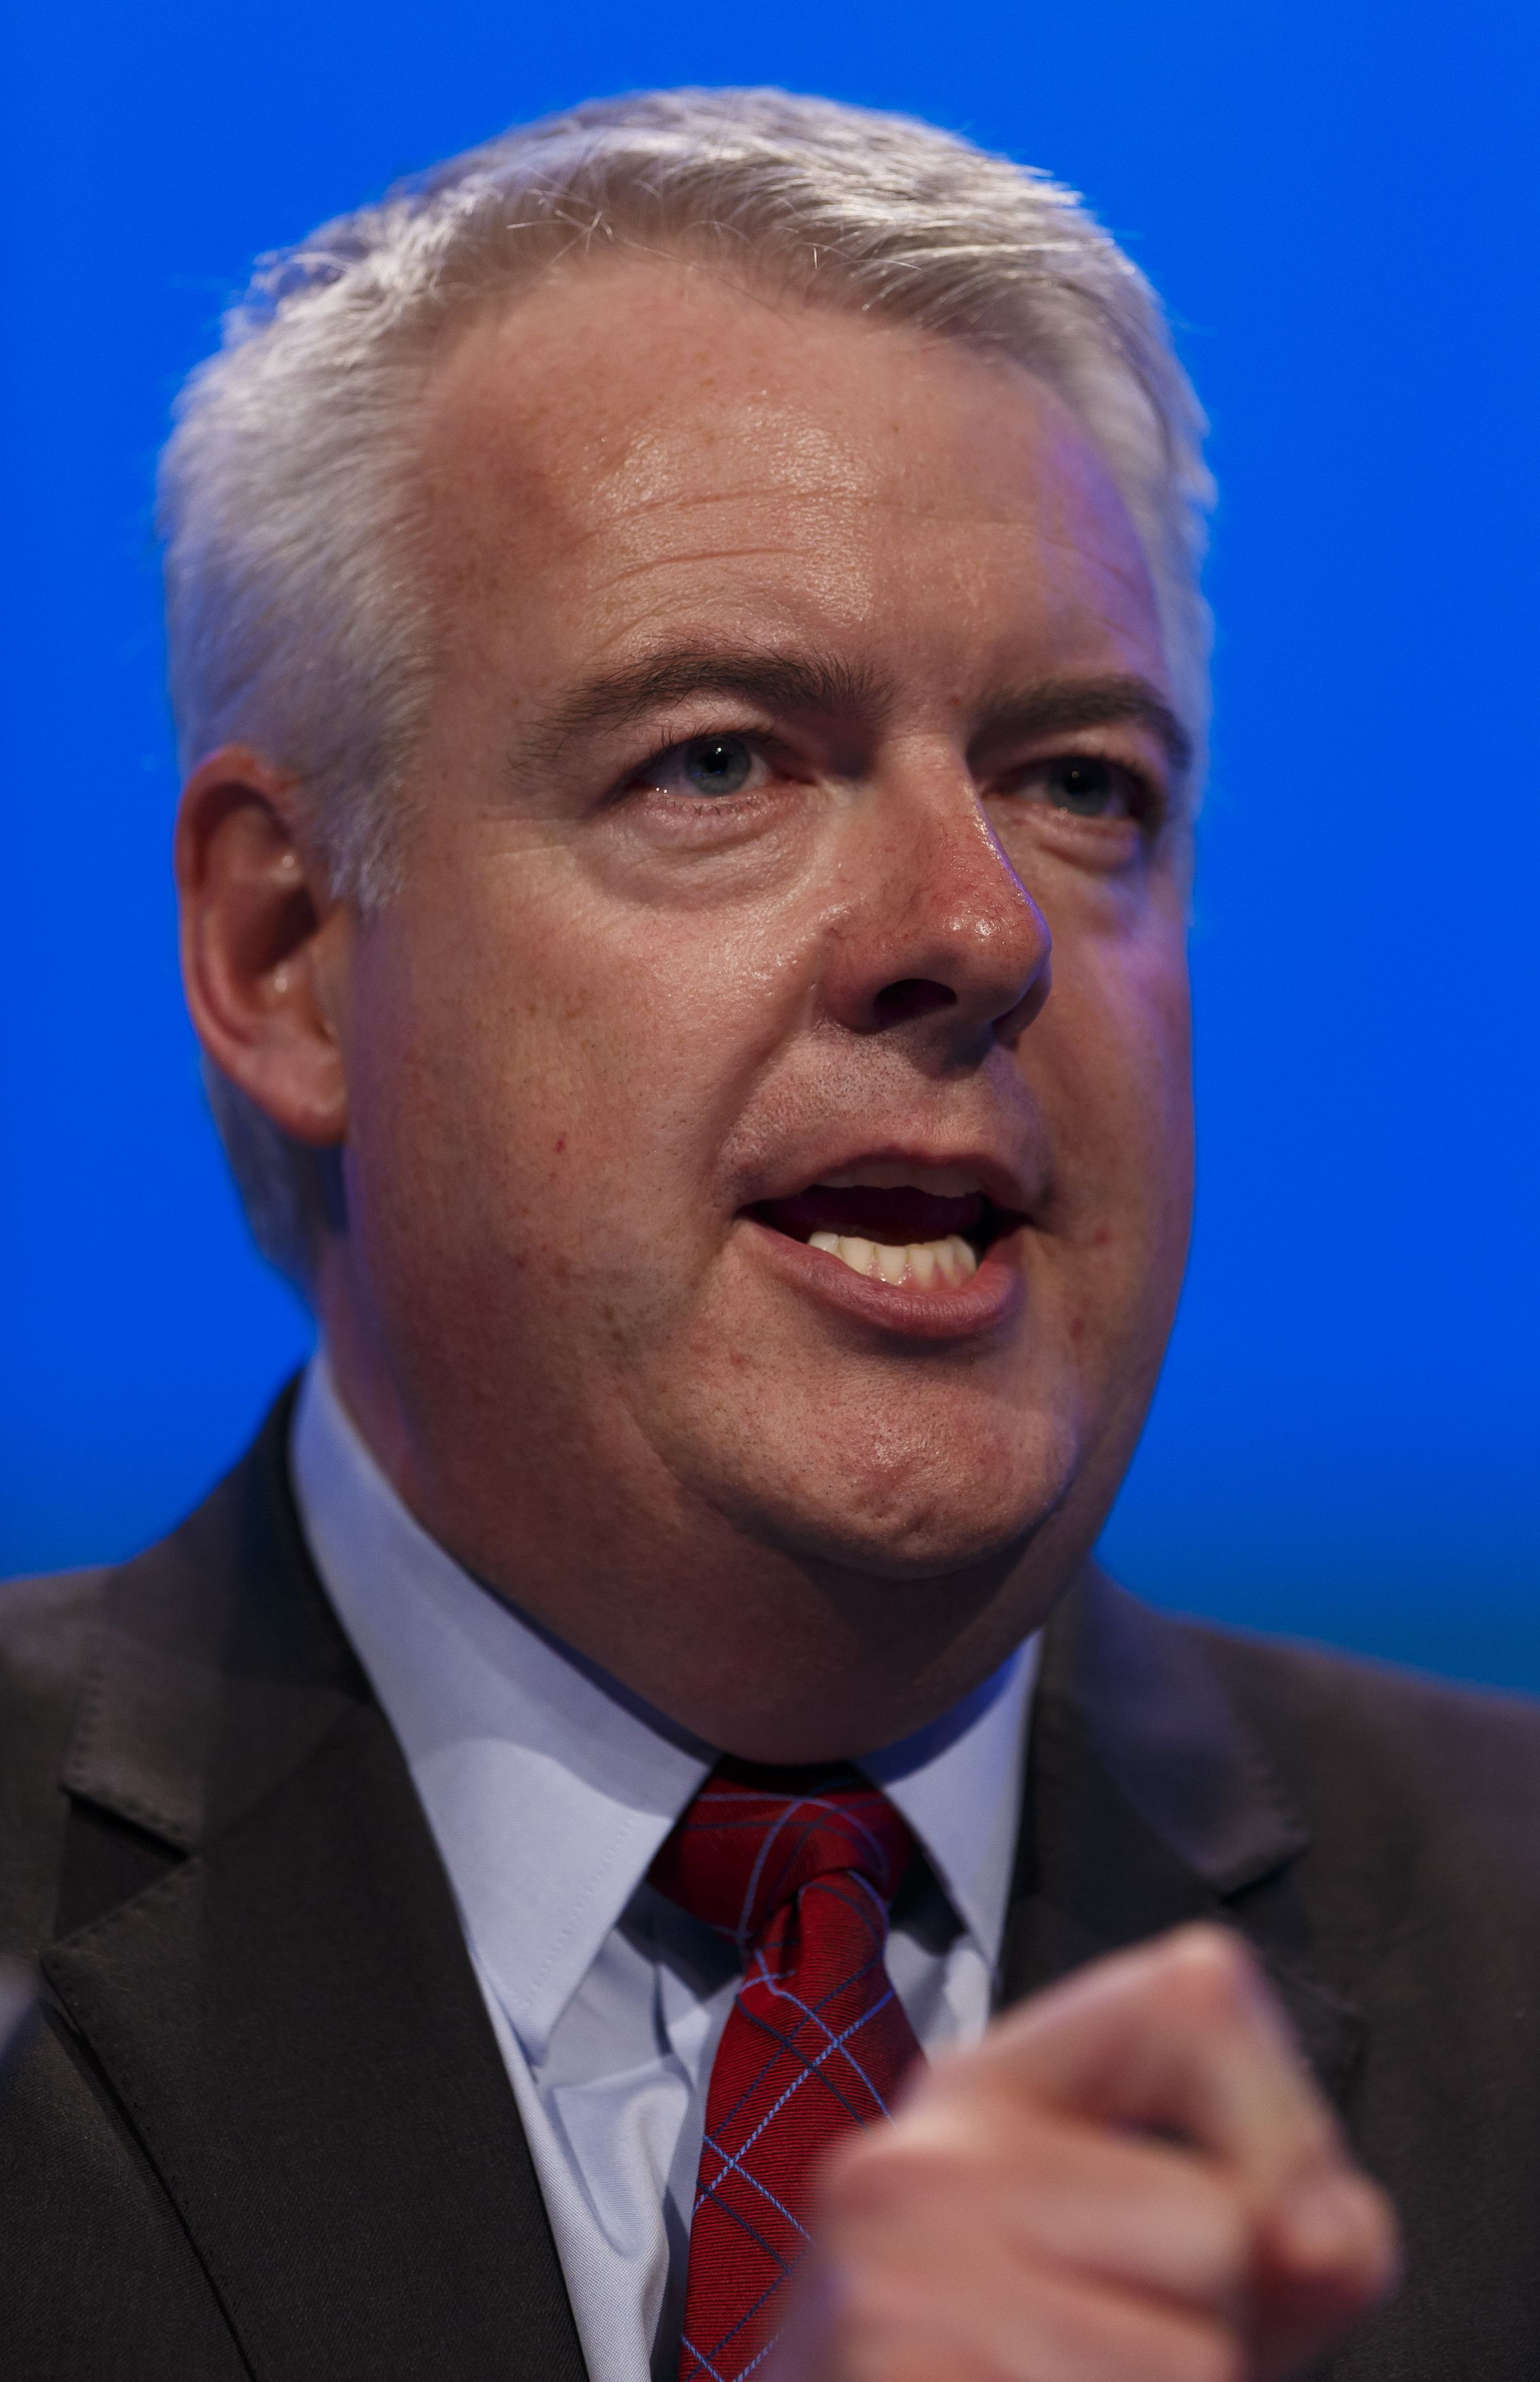 Ann Clwyd has produced 'no evidence' on Welsh NHS 'crisis' - Carwyn Jones